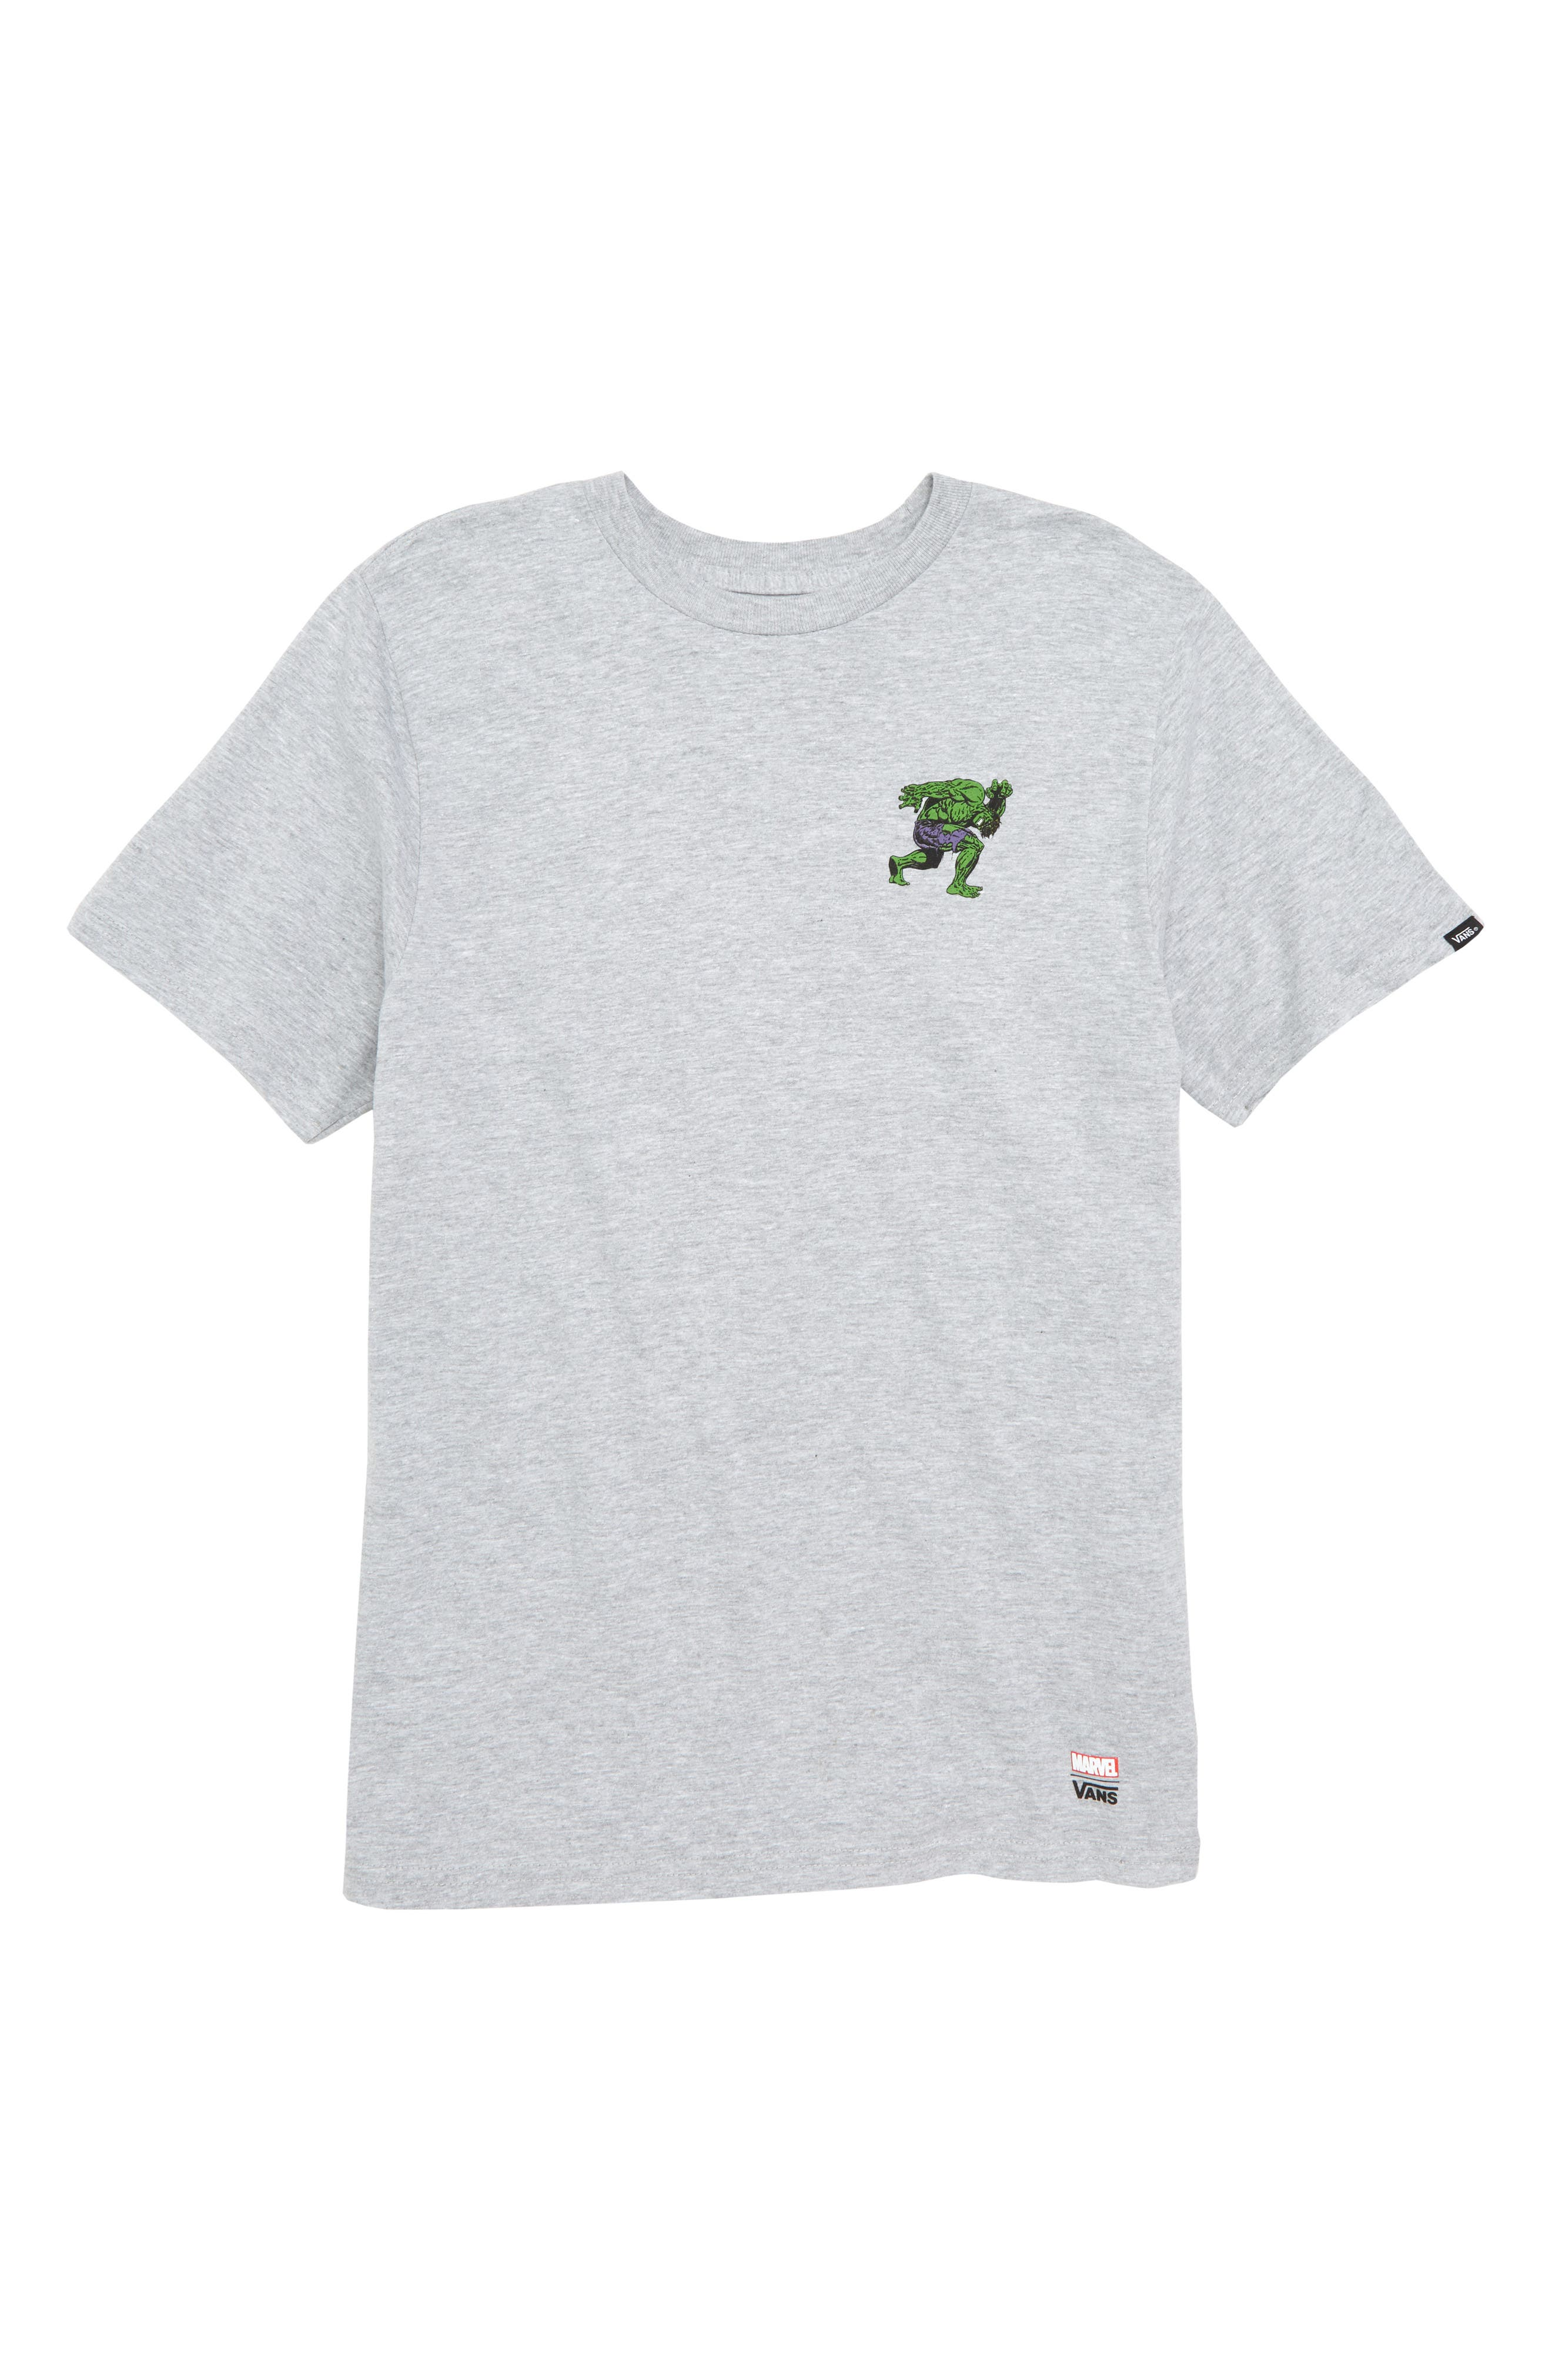 x Marvel<sup>®</sup> Avengers Hulk Graphic T-Shirt,                             Main thumbnail 1, color,                             Athletic Heather